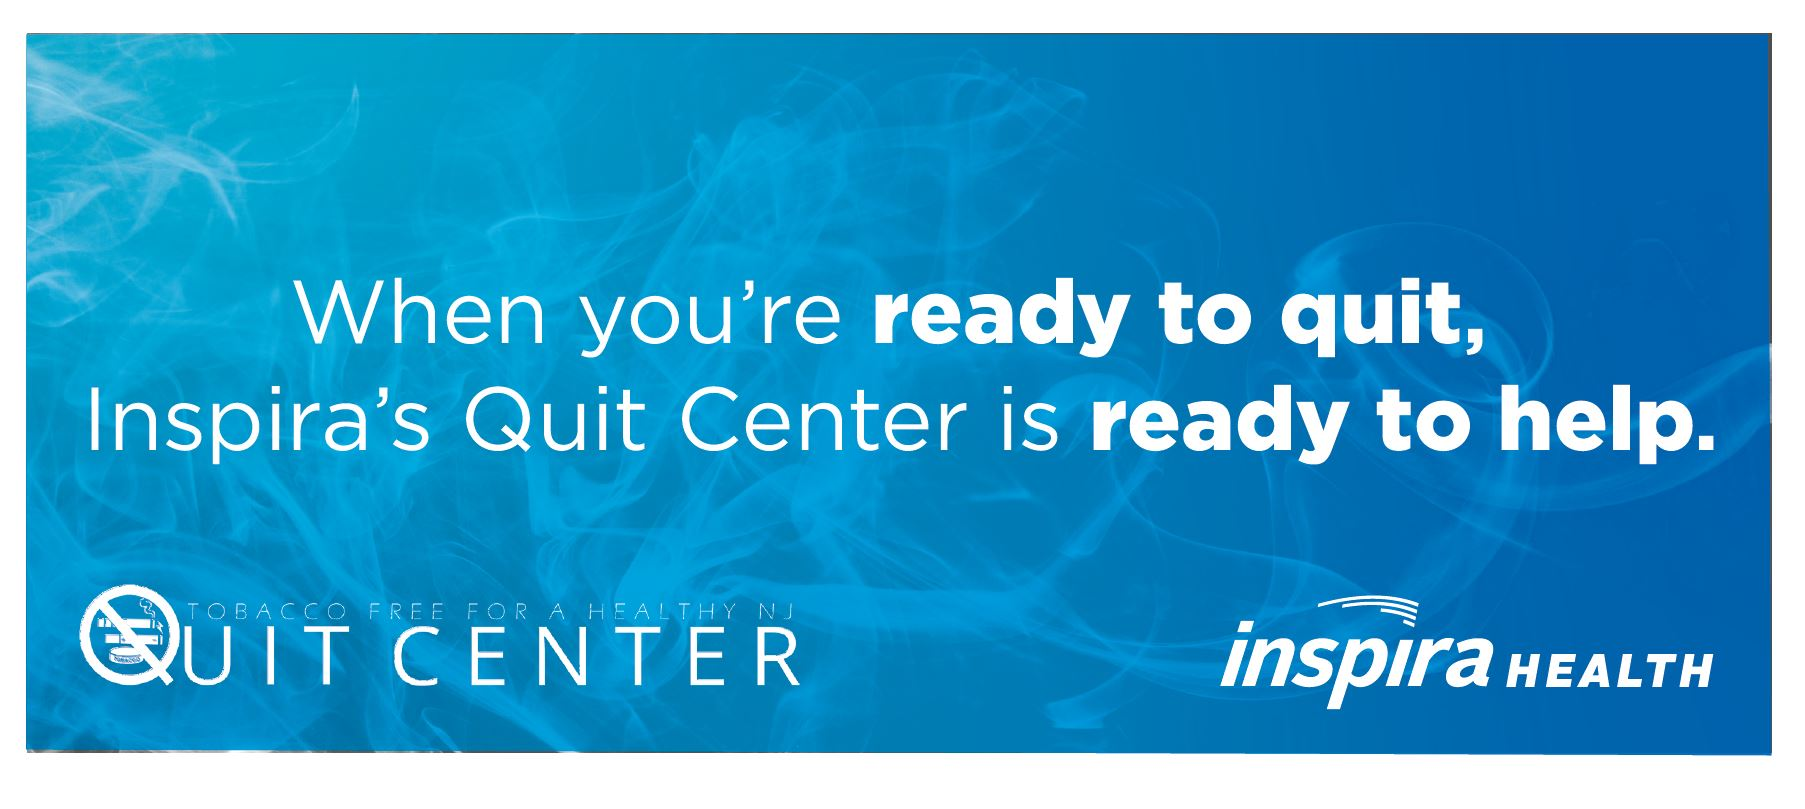 Quit Center website slide